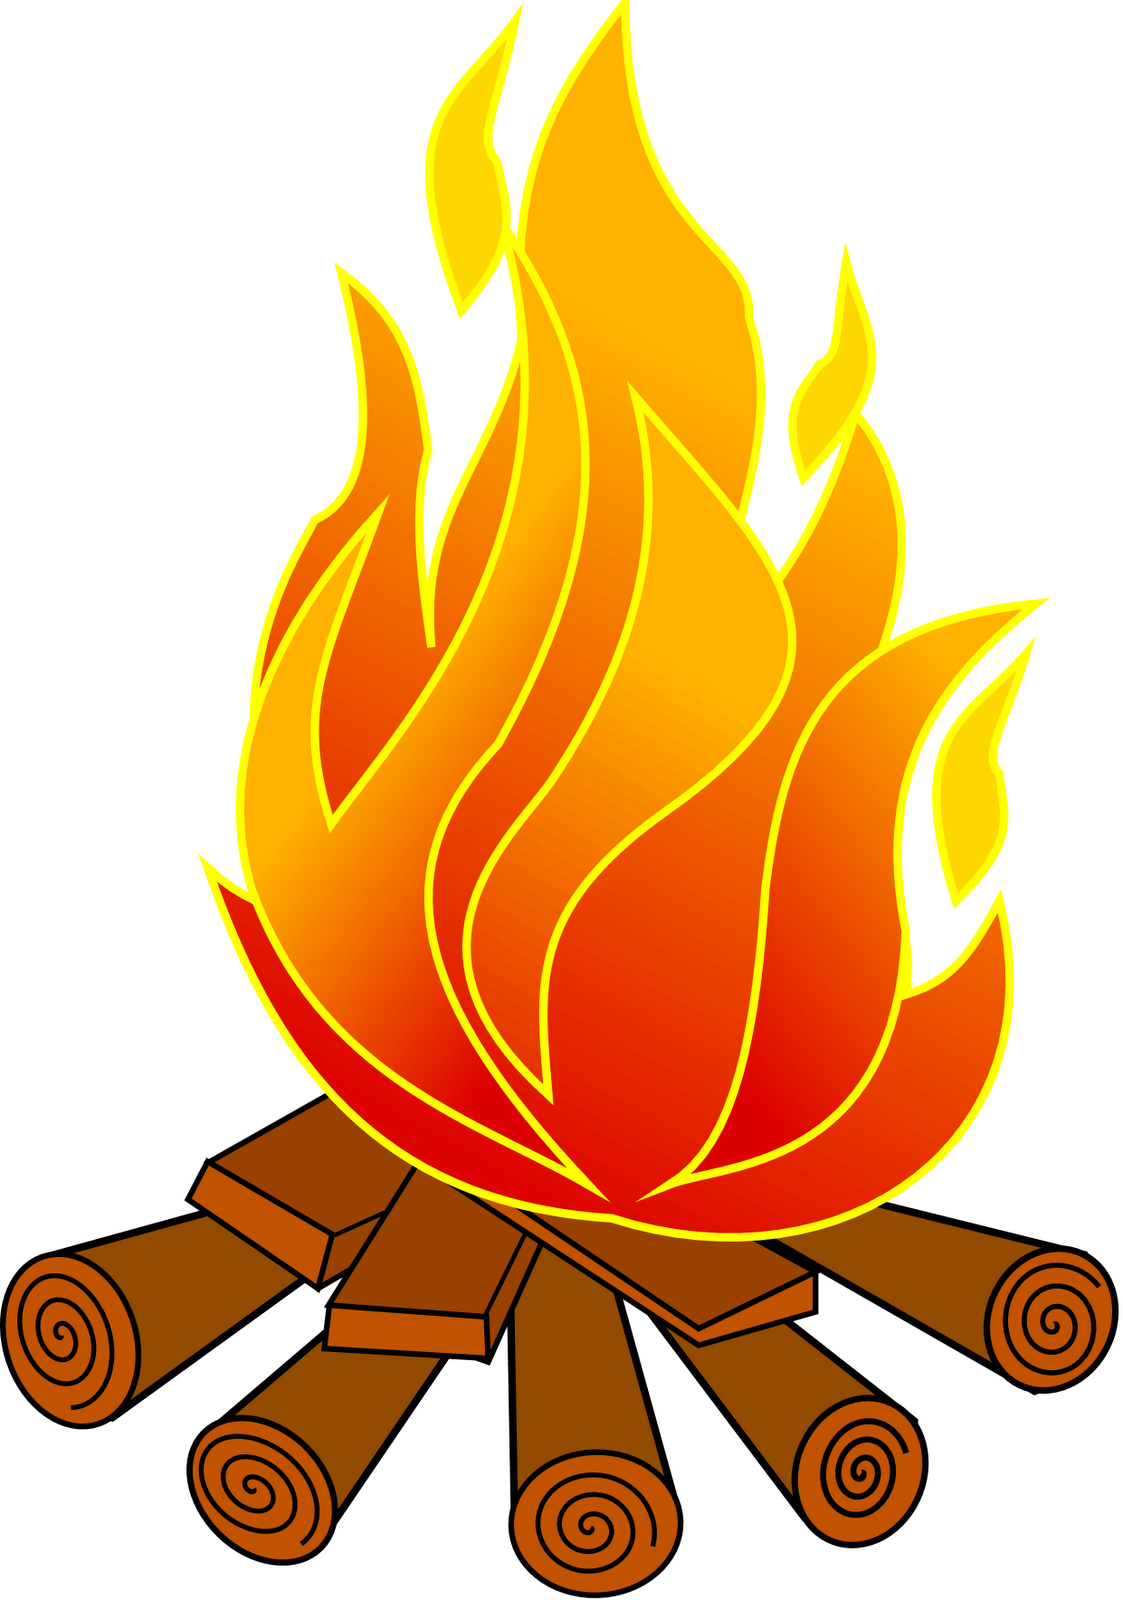 Campfire planning pinterest campfires. Youtube clipart football